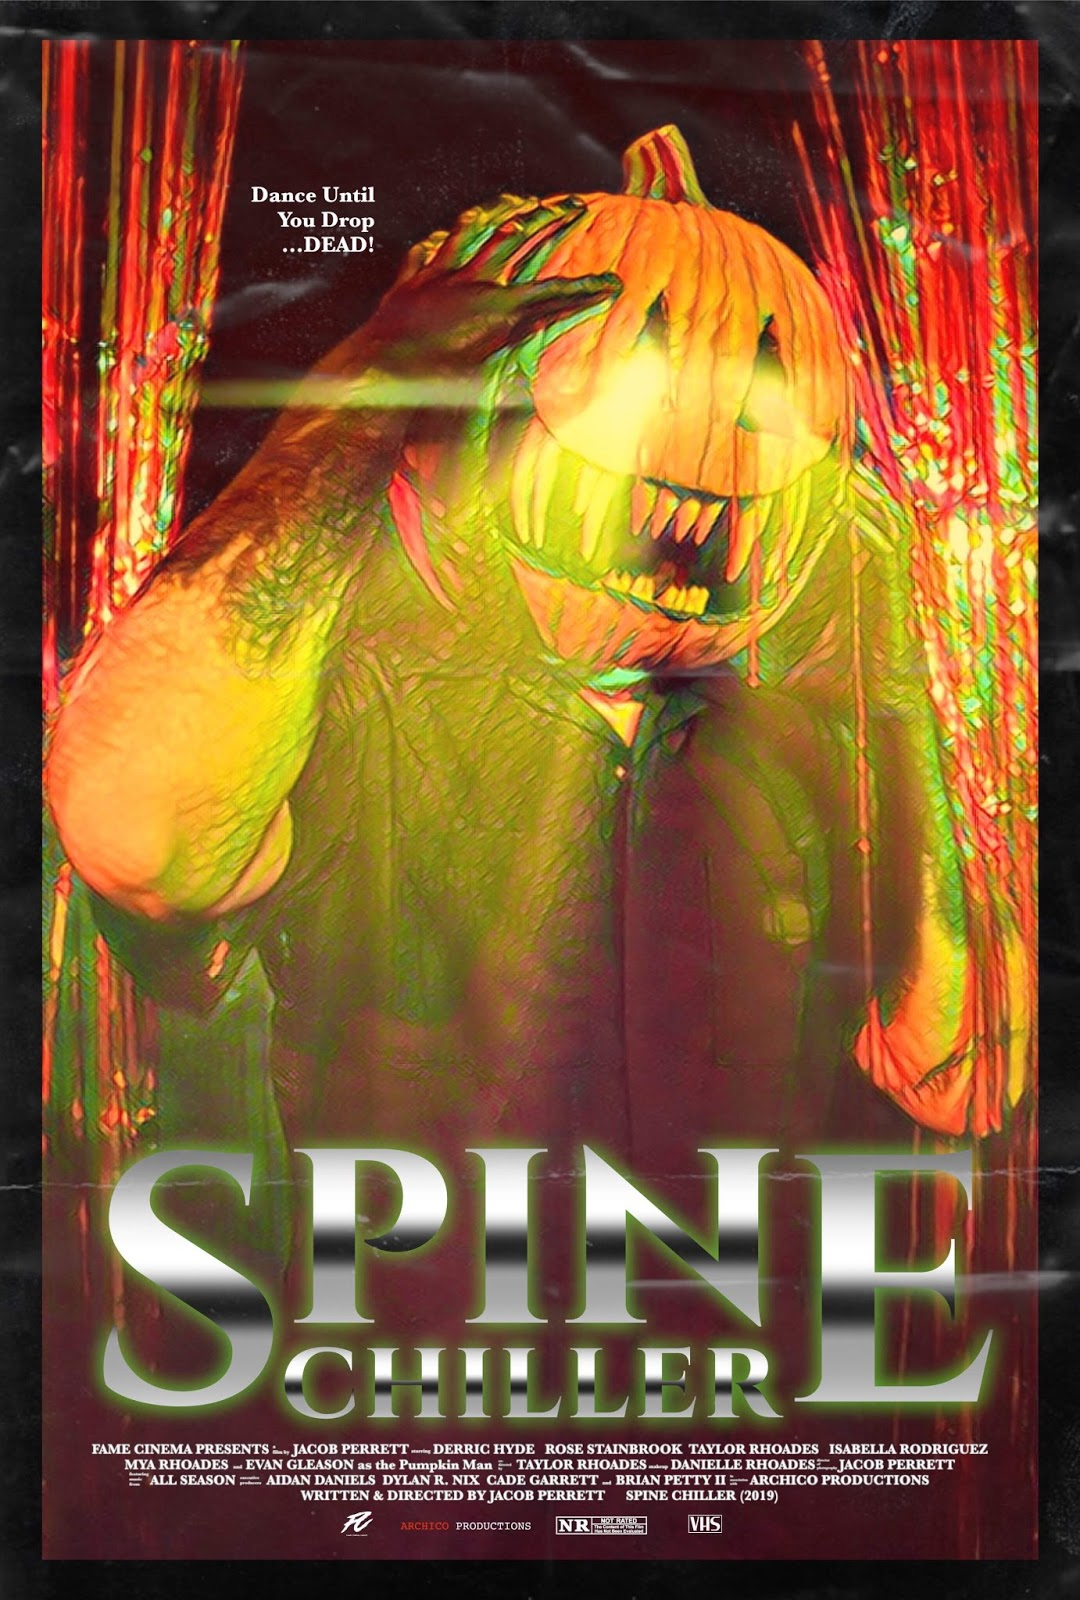 Halloween 2020 Soundtr The Horrors of Halloween: SPINE CHILLER (2019) Trailers, Posters